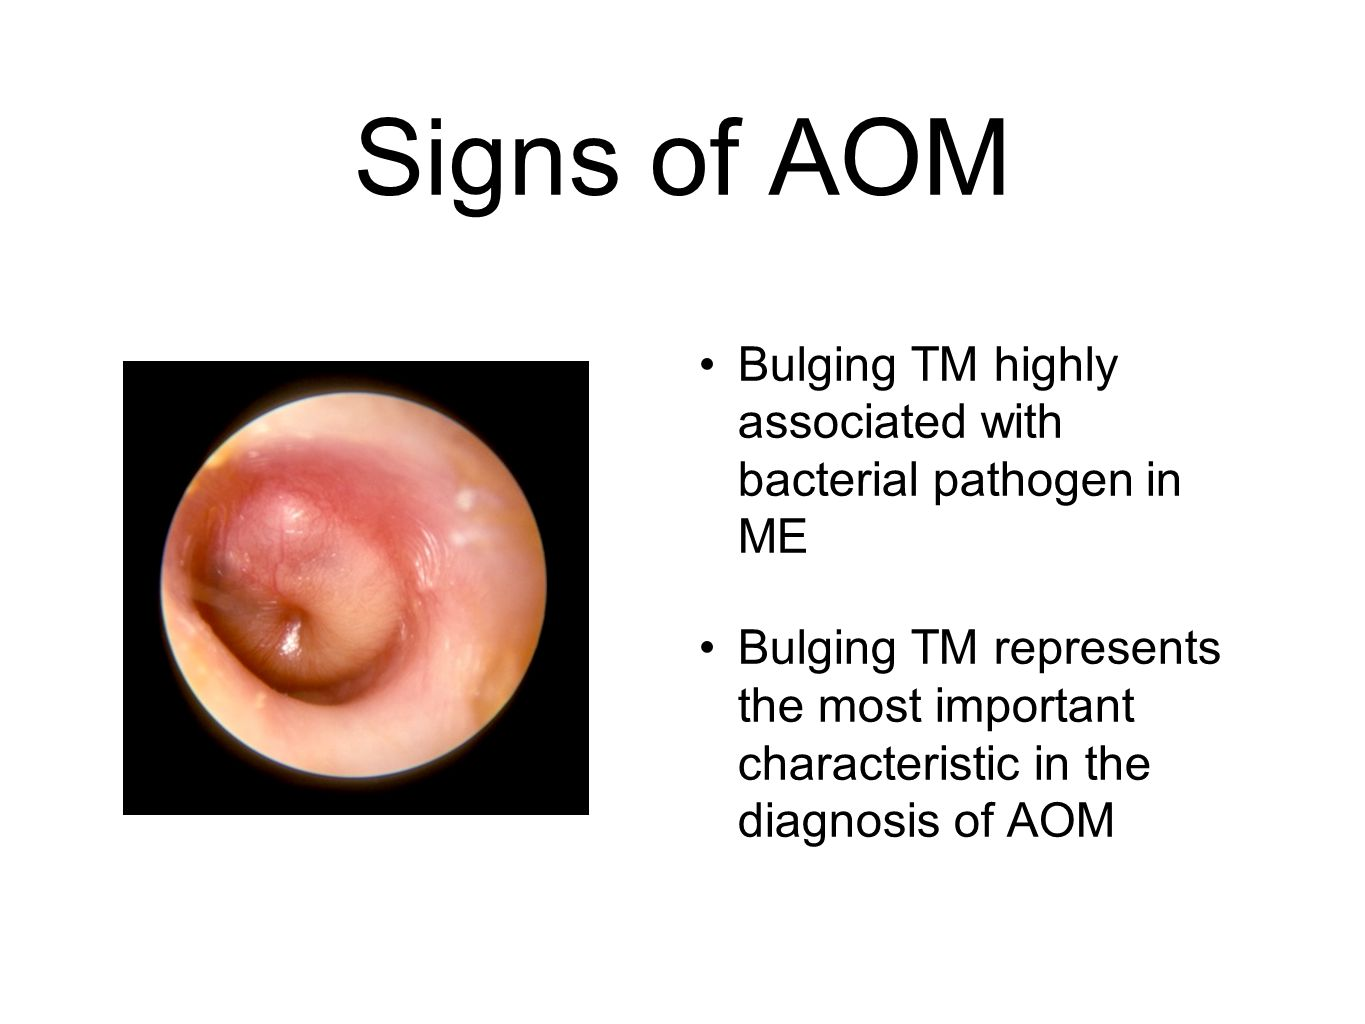 Signs of AOM Bulging TM highly associated with bacterial pathogen in ME.